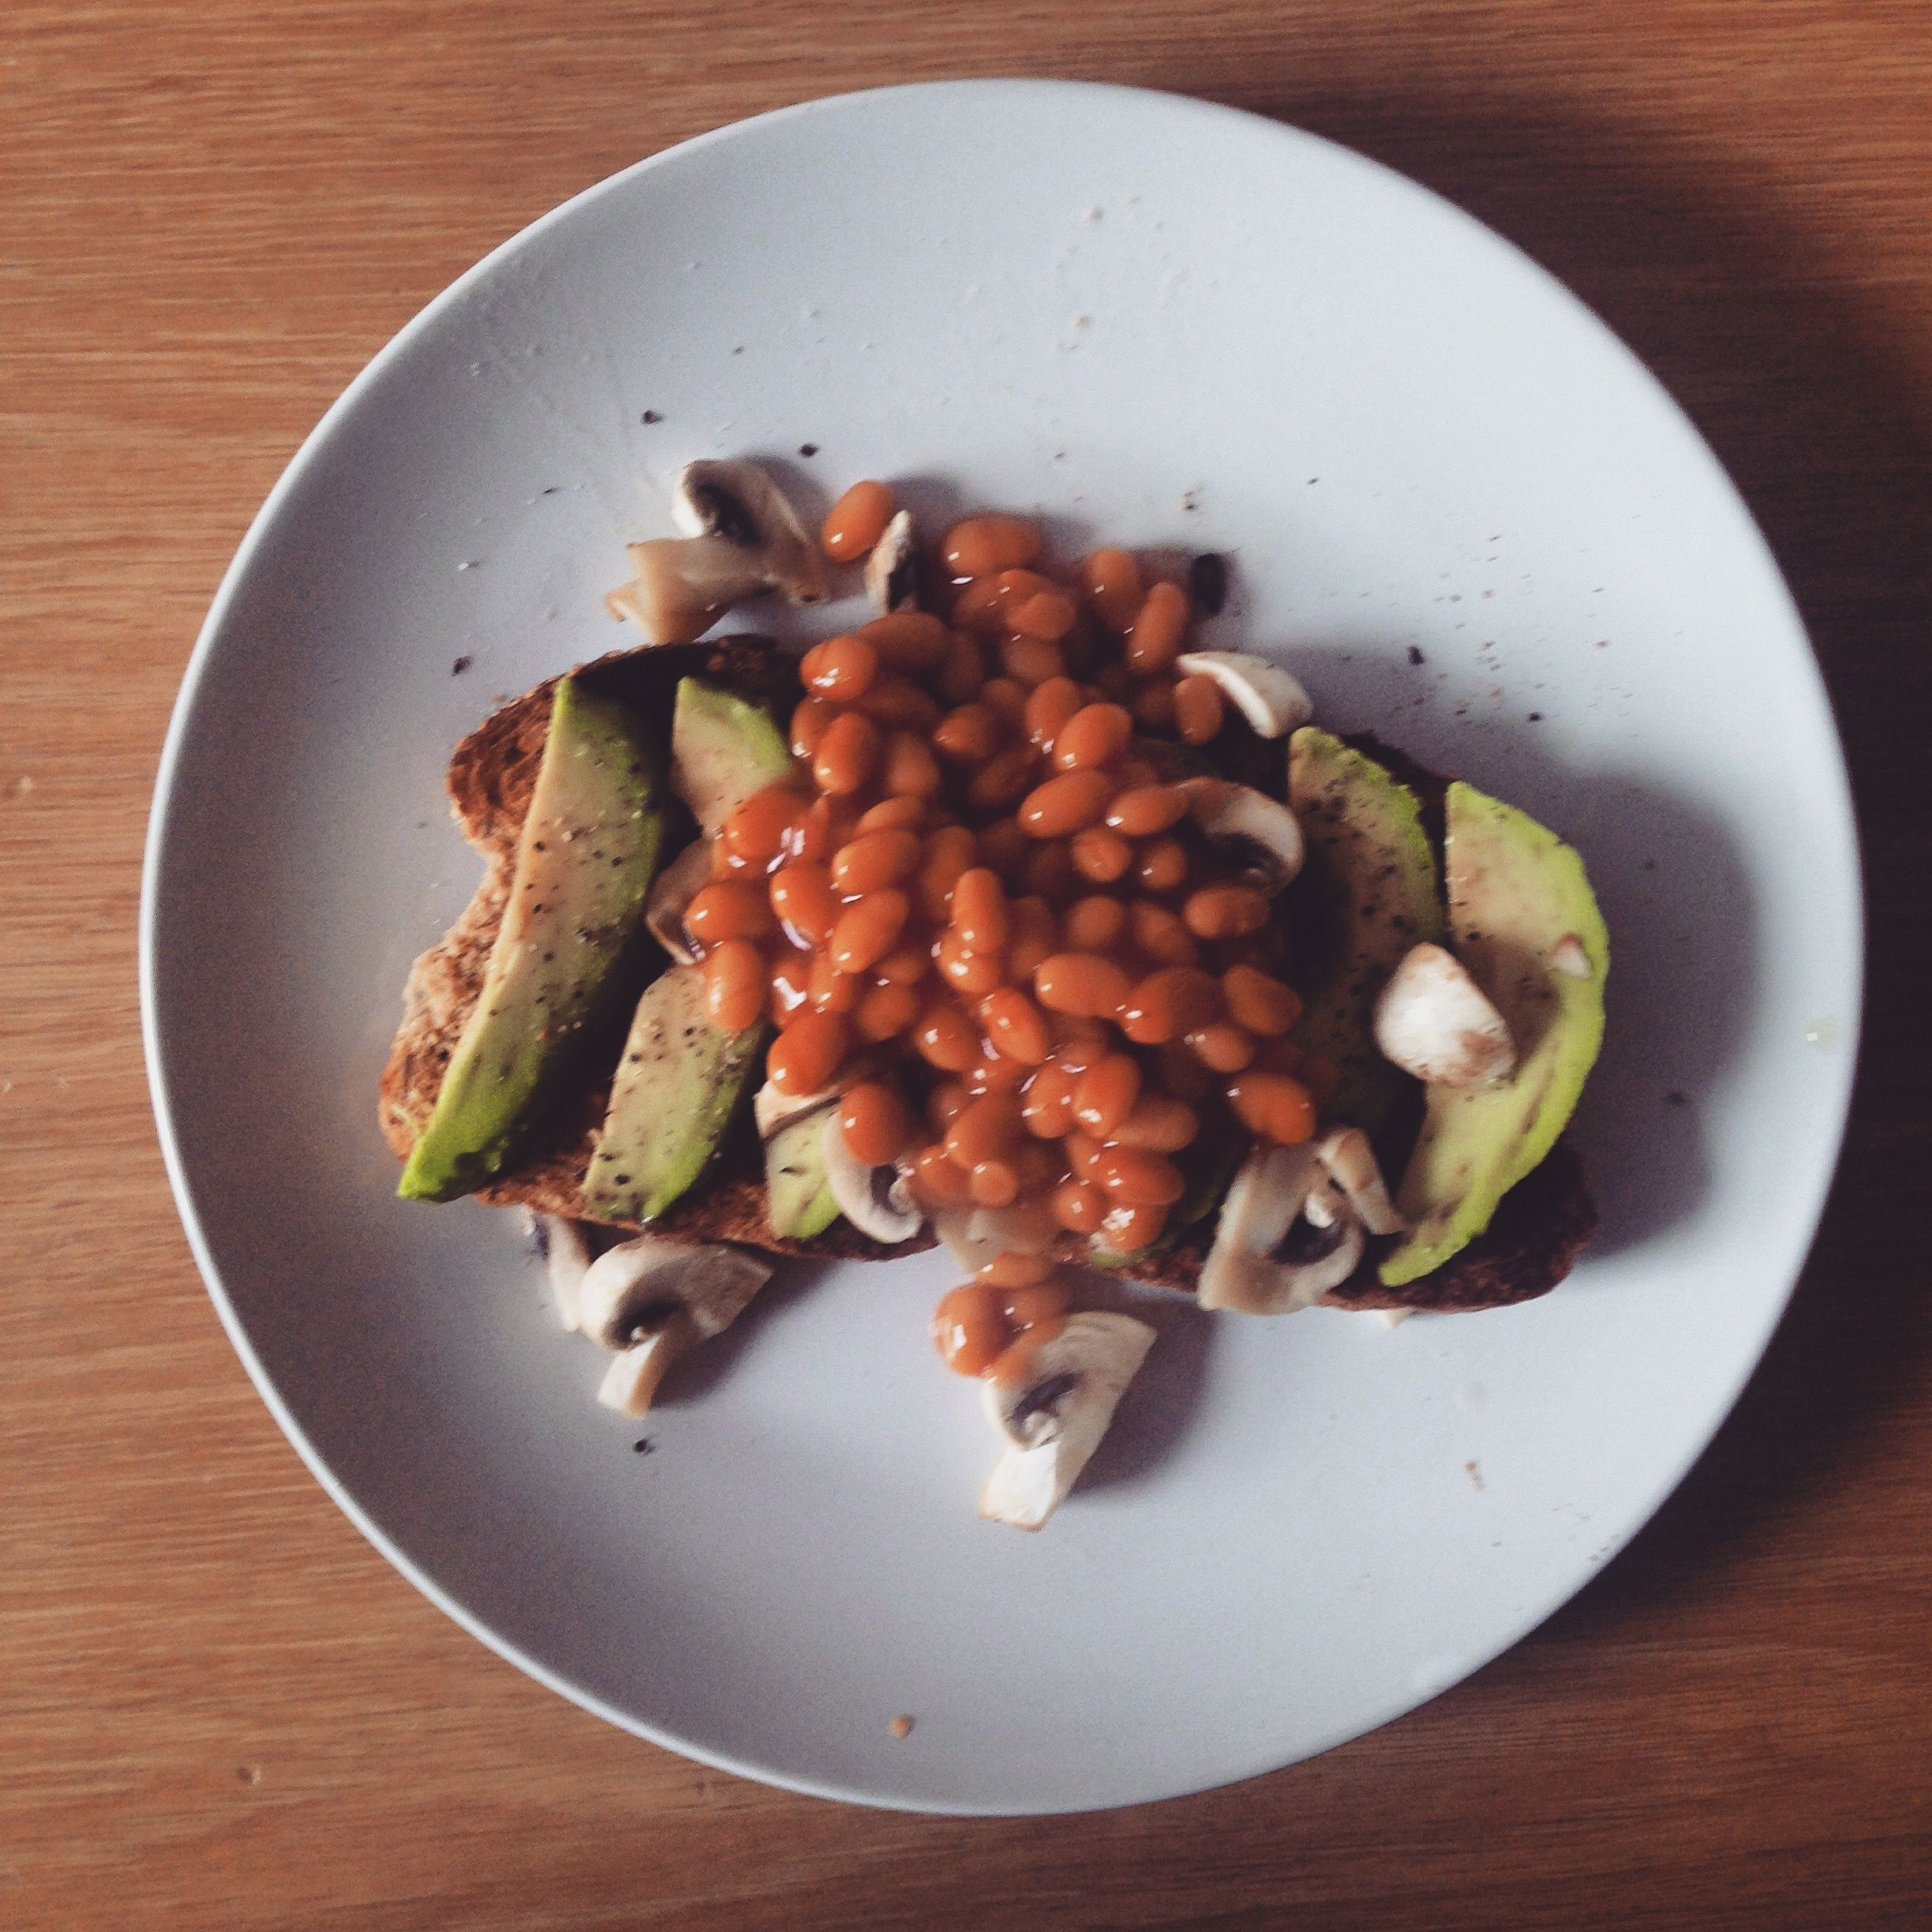 Avo-on-toast take 1 - ft beans and mushrooms #lunch